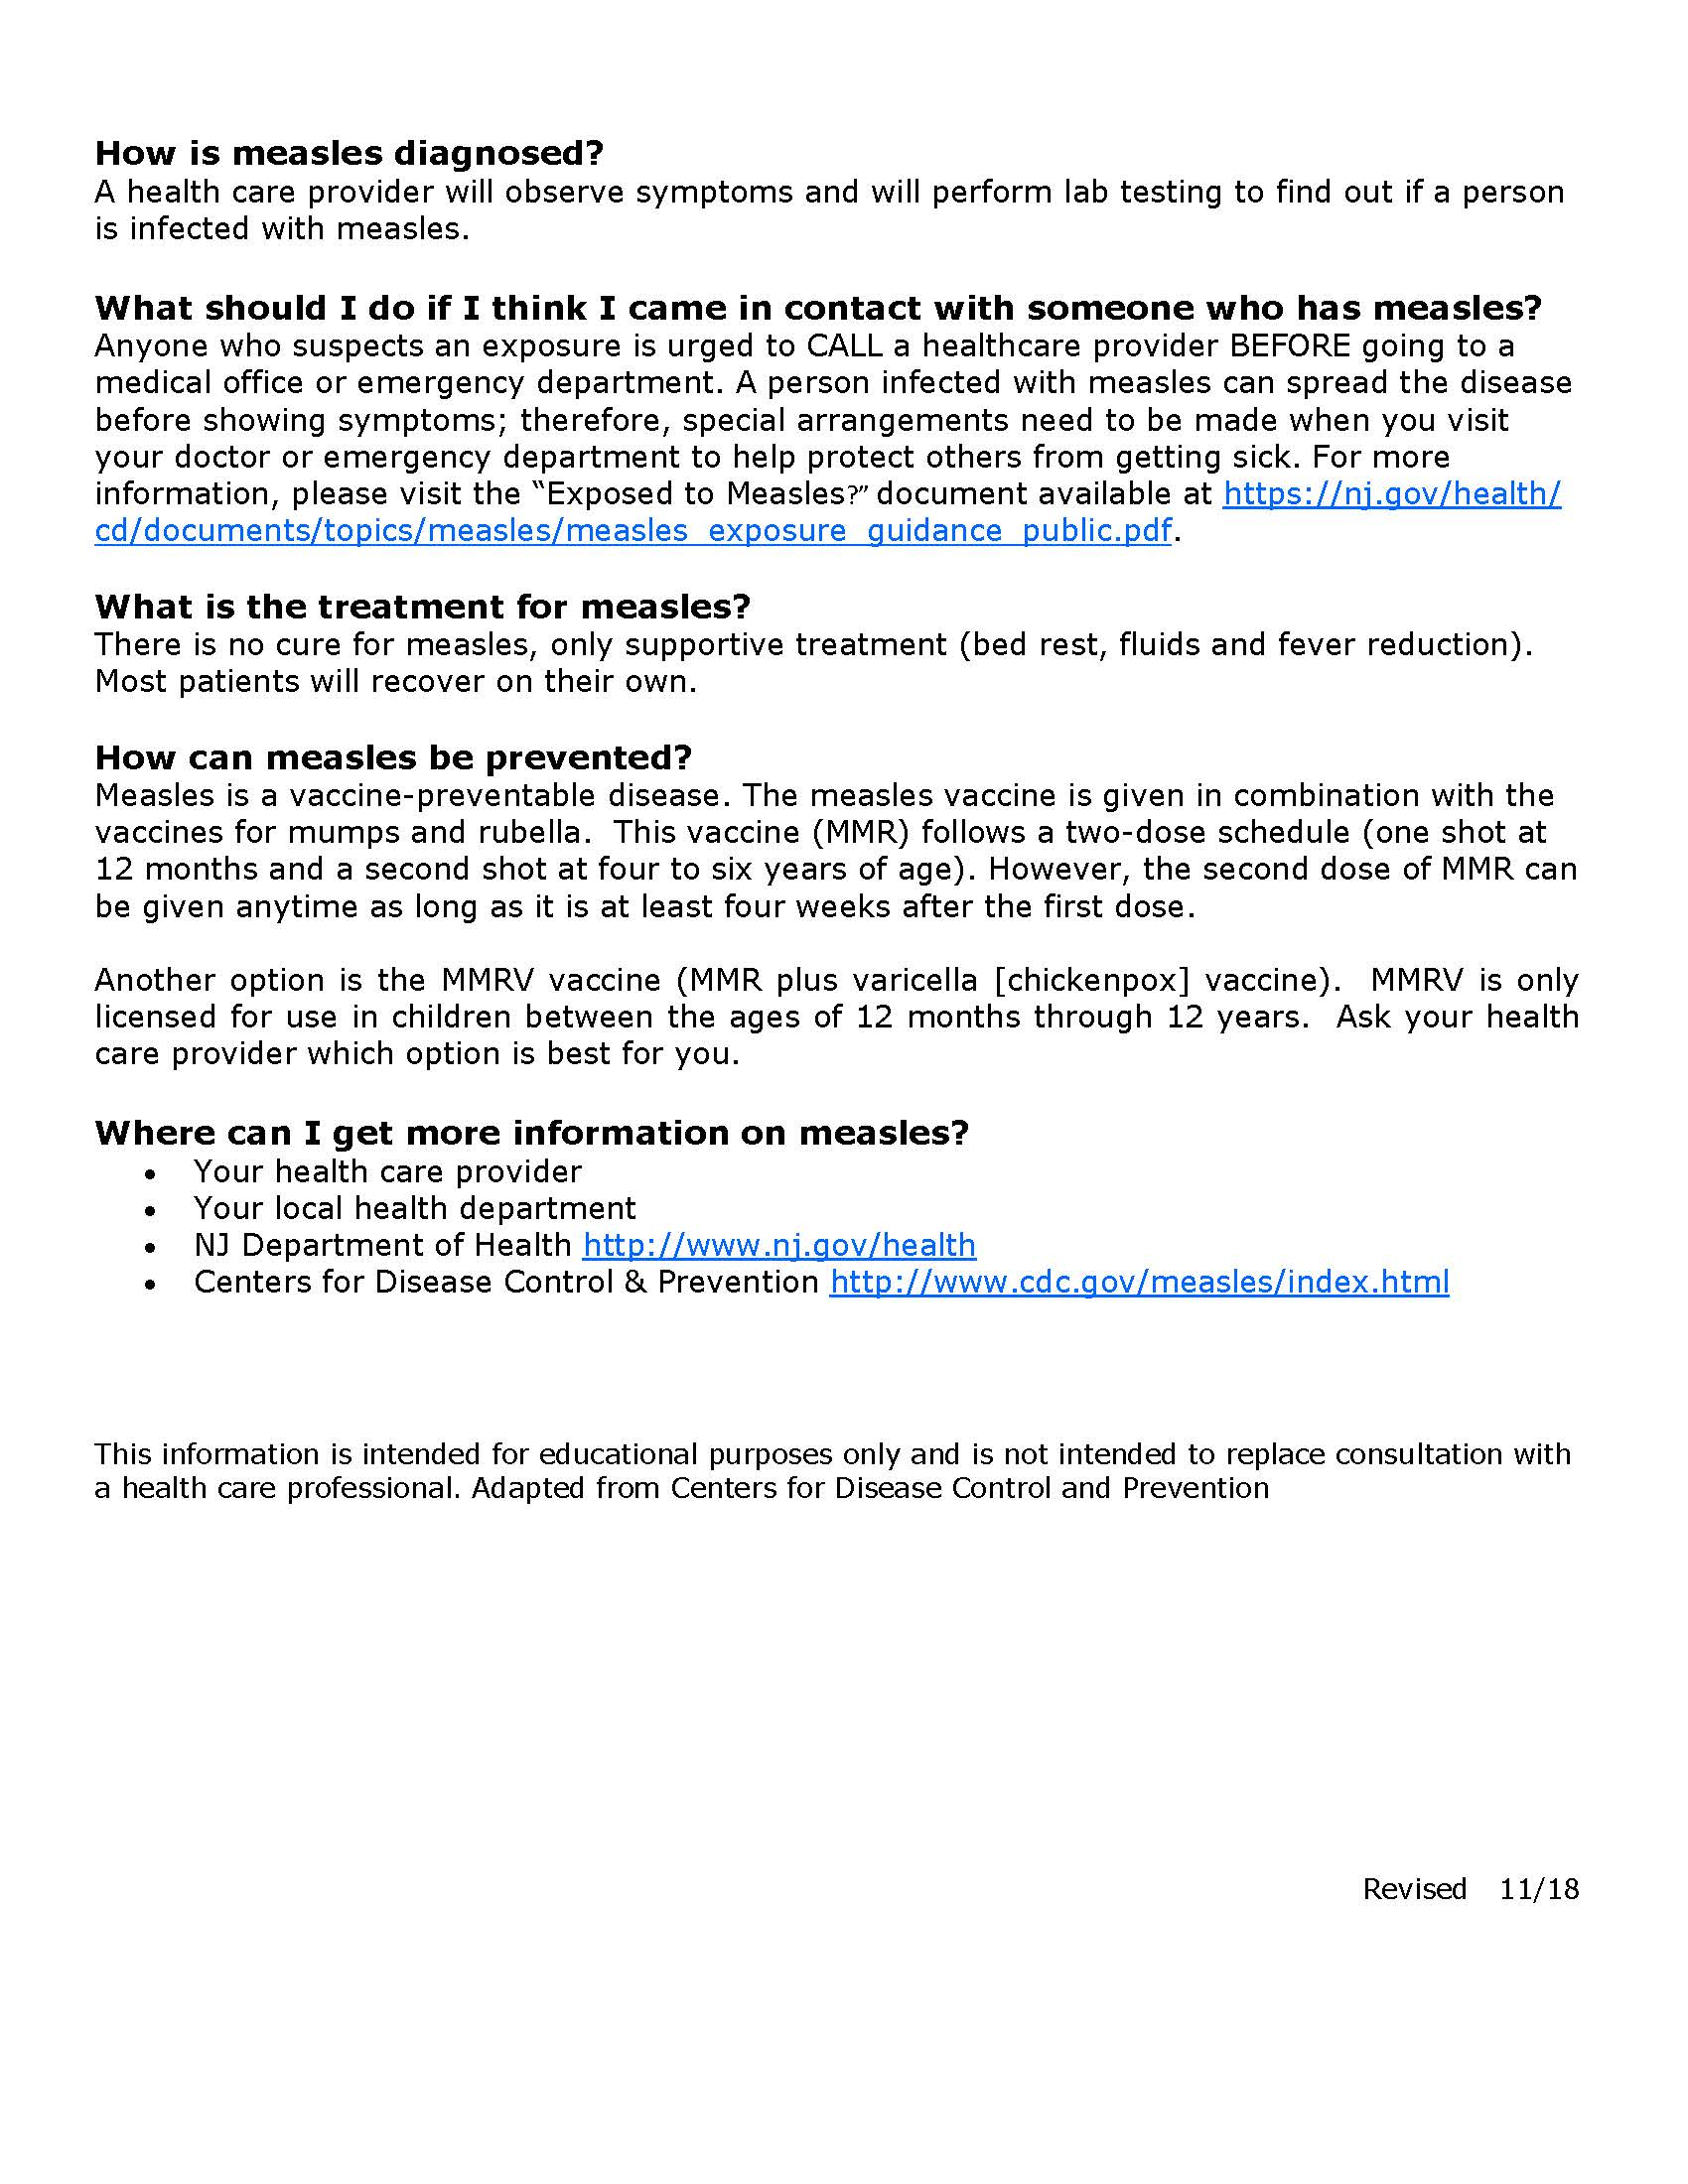 measles faq Page 2